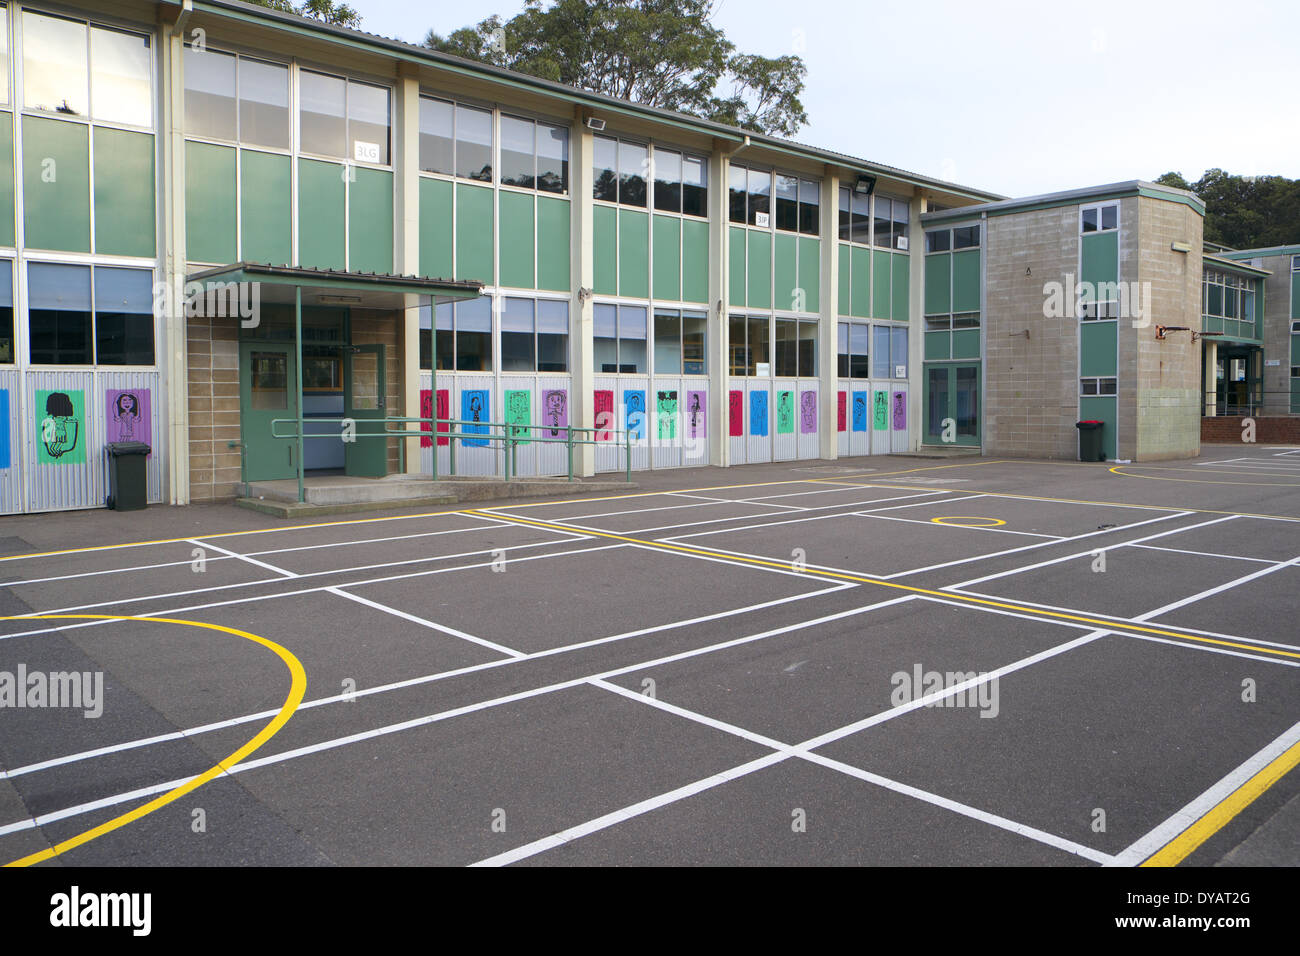 Sydney Primary School Buildings And Playground Stock Photo Royalty Free Image 68465224 Alamy